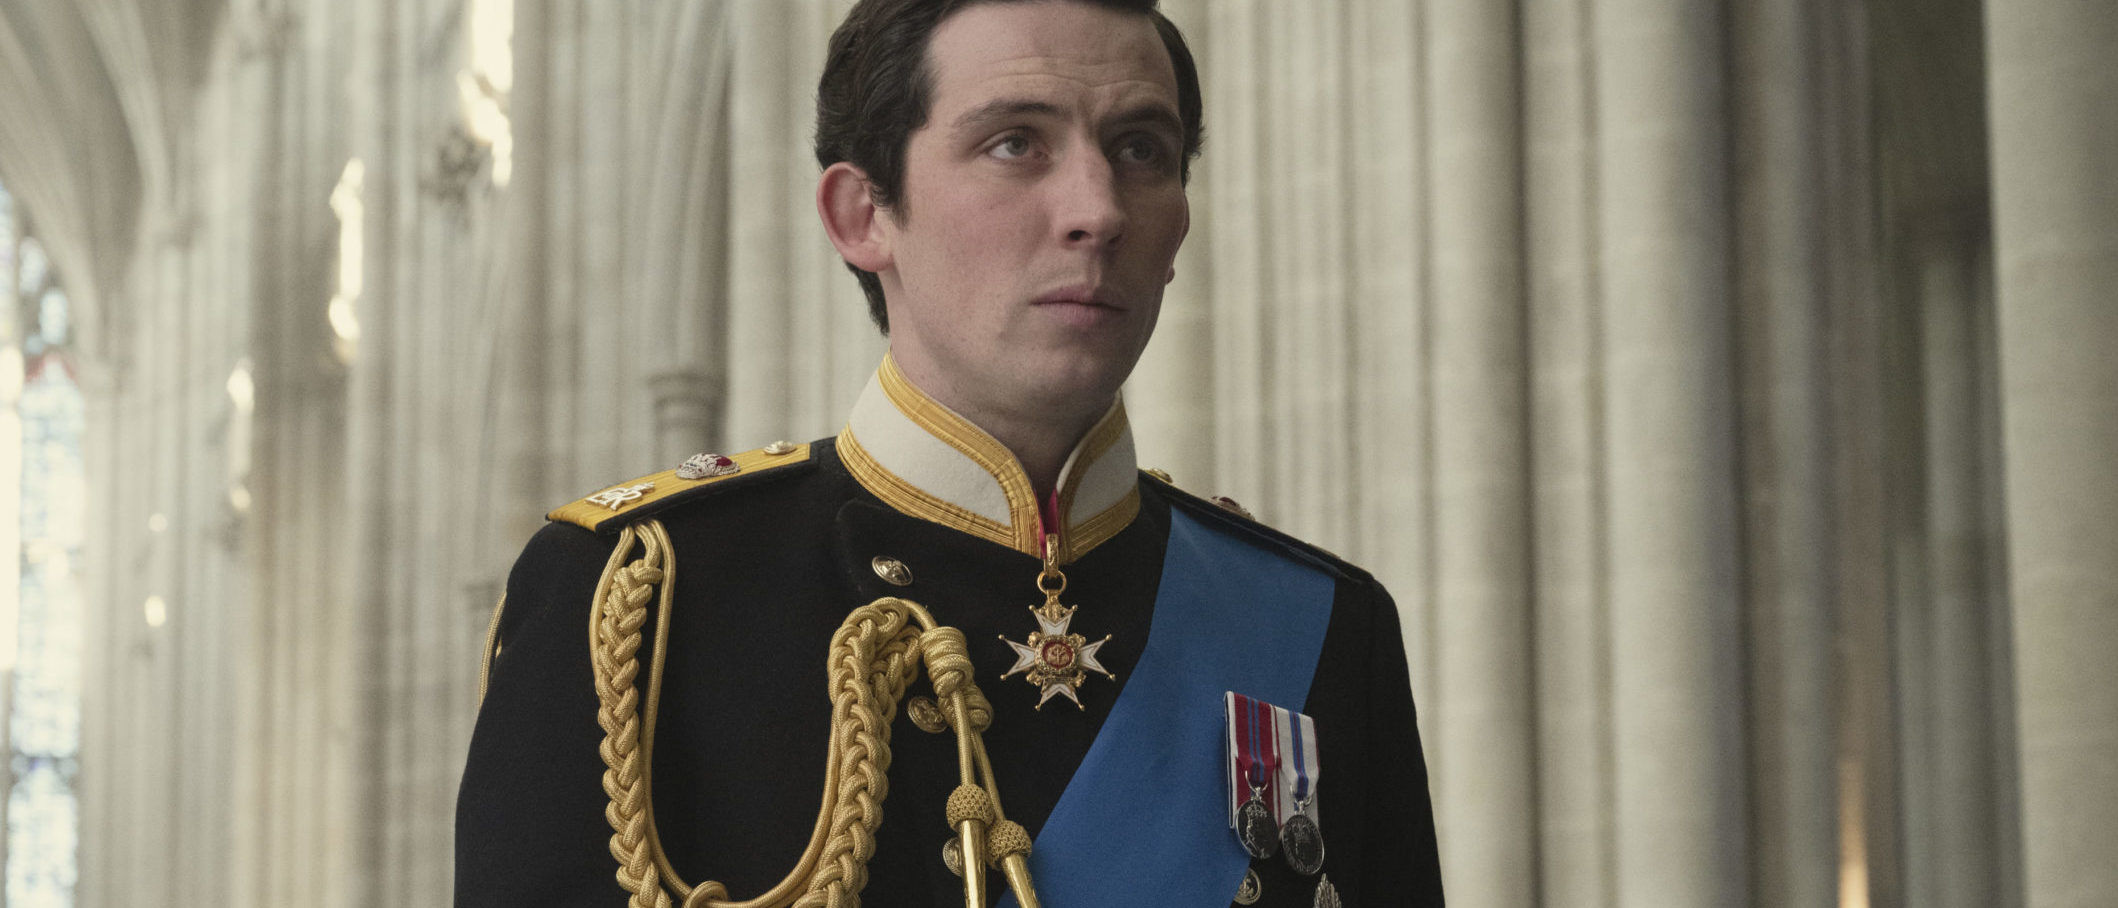 The Crown S4 Netflix Prince Charles